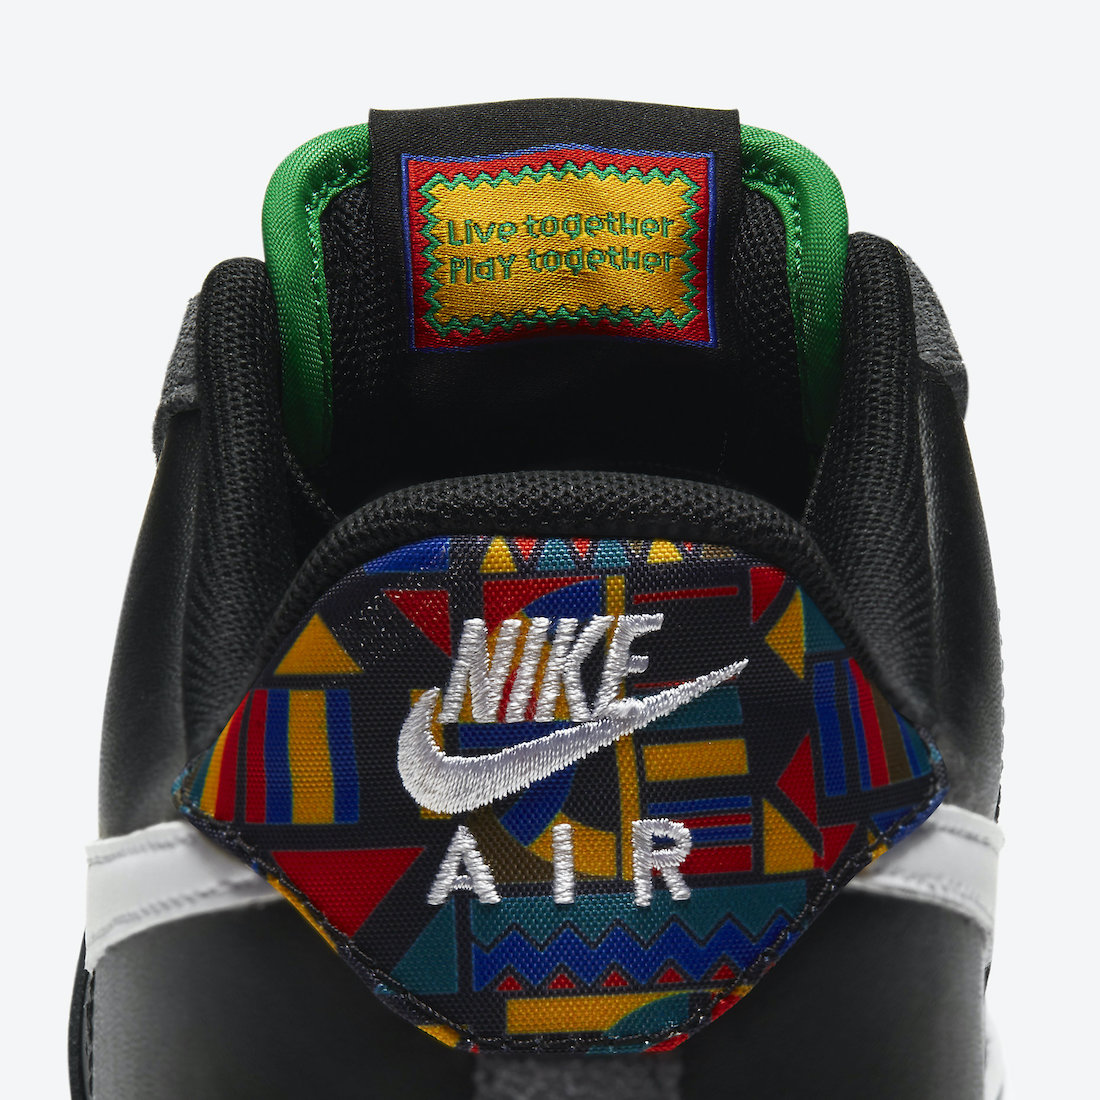 0c9943a6-nike-air-force-1-live-together-play-together-urban-jungle-gym-dc1483-001-release-date-8